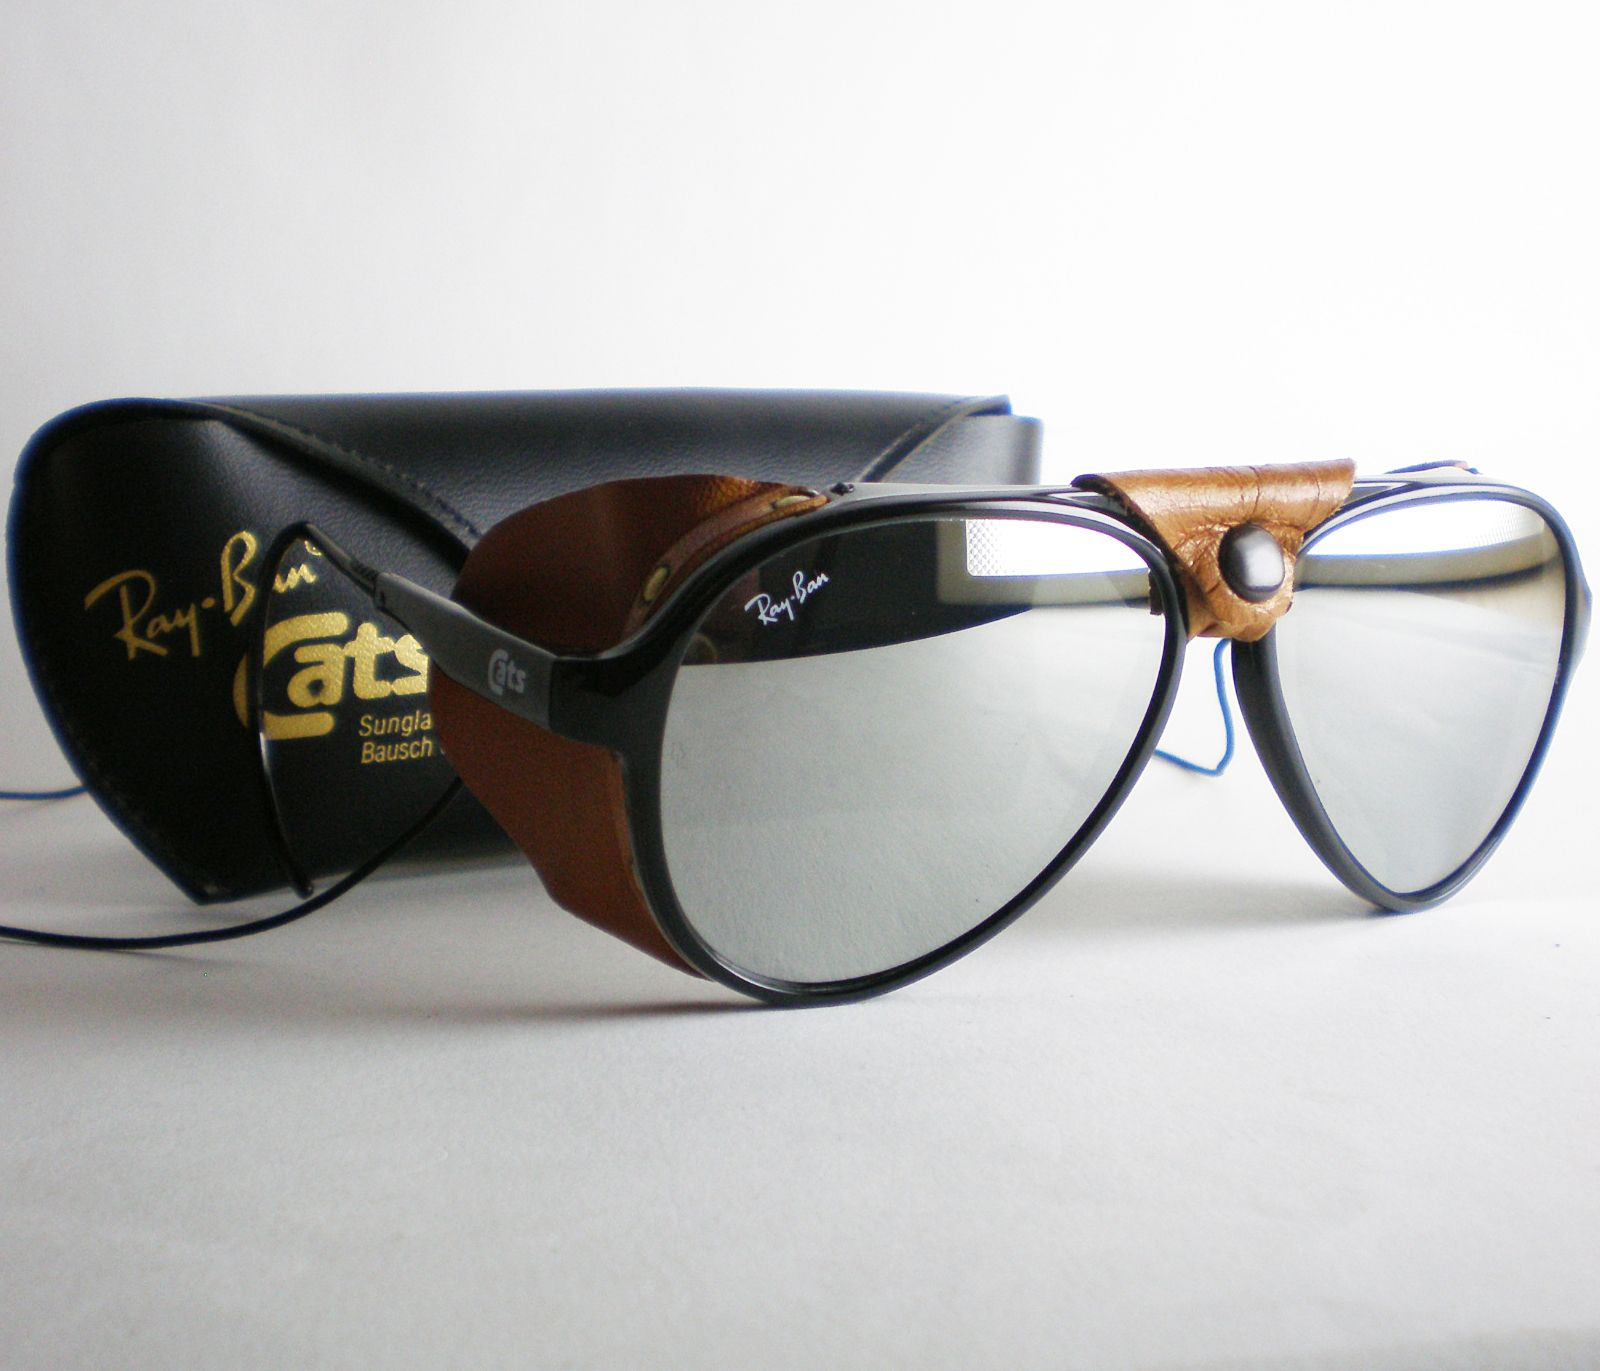 10d91f136f Vintage Ray Ban CATS 8000 MIRRORED Sunglasses aviator side shield leathers  black